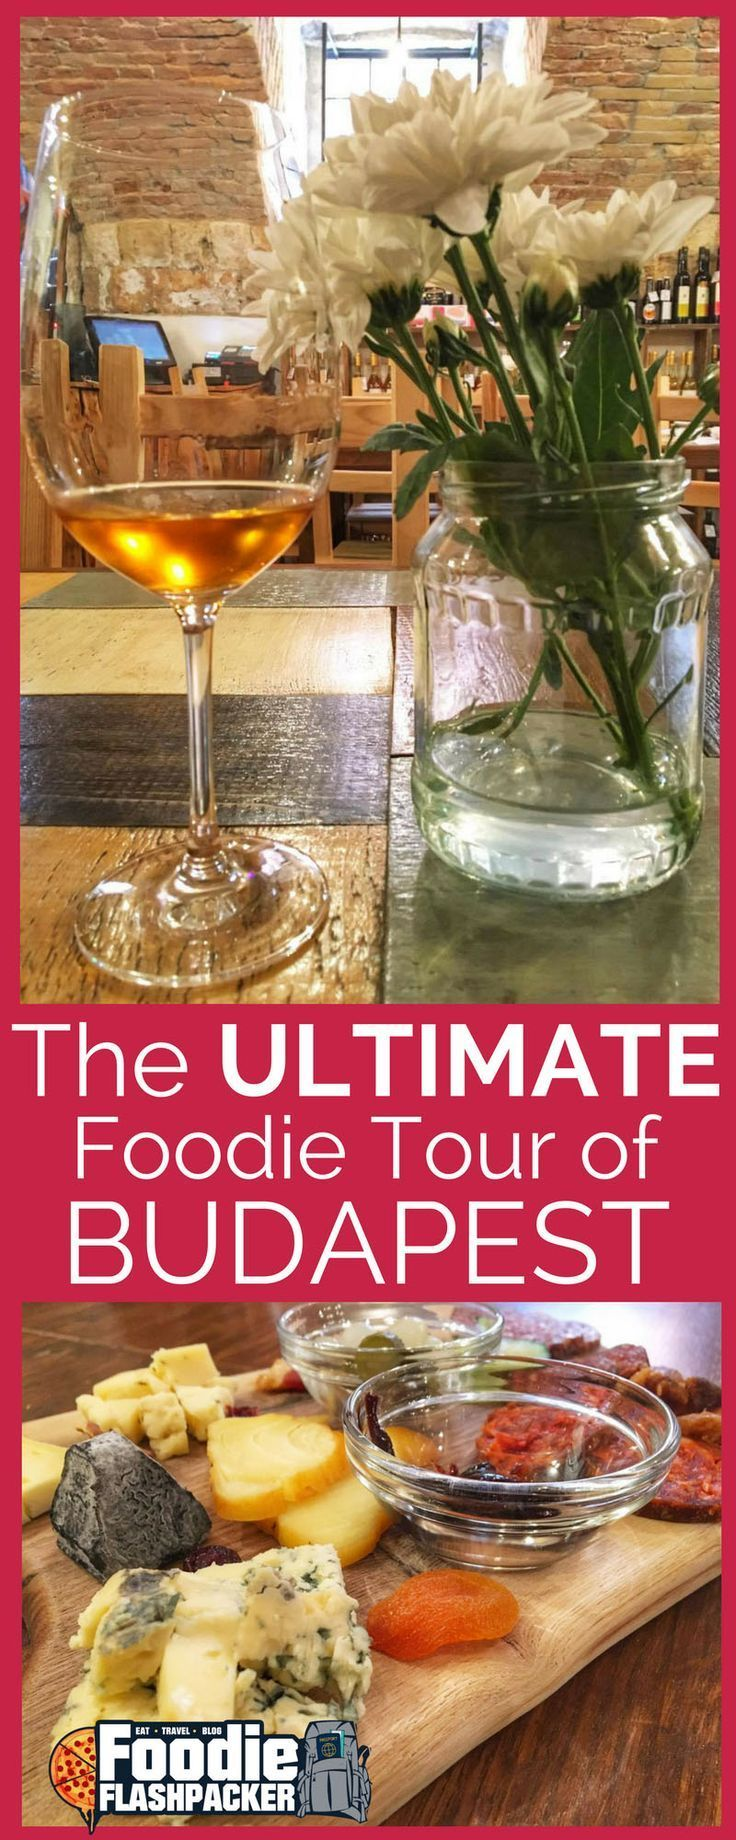 Jewish Cuisine Walking Food Tour Of Budapest With Taste